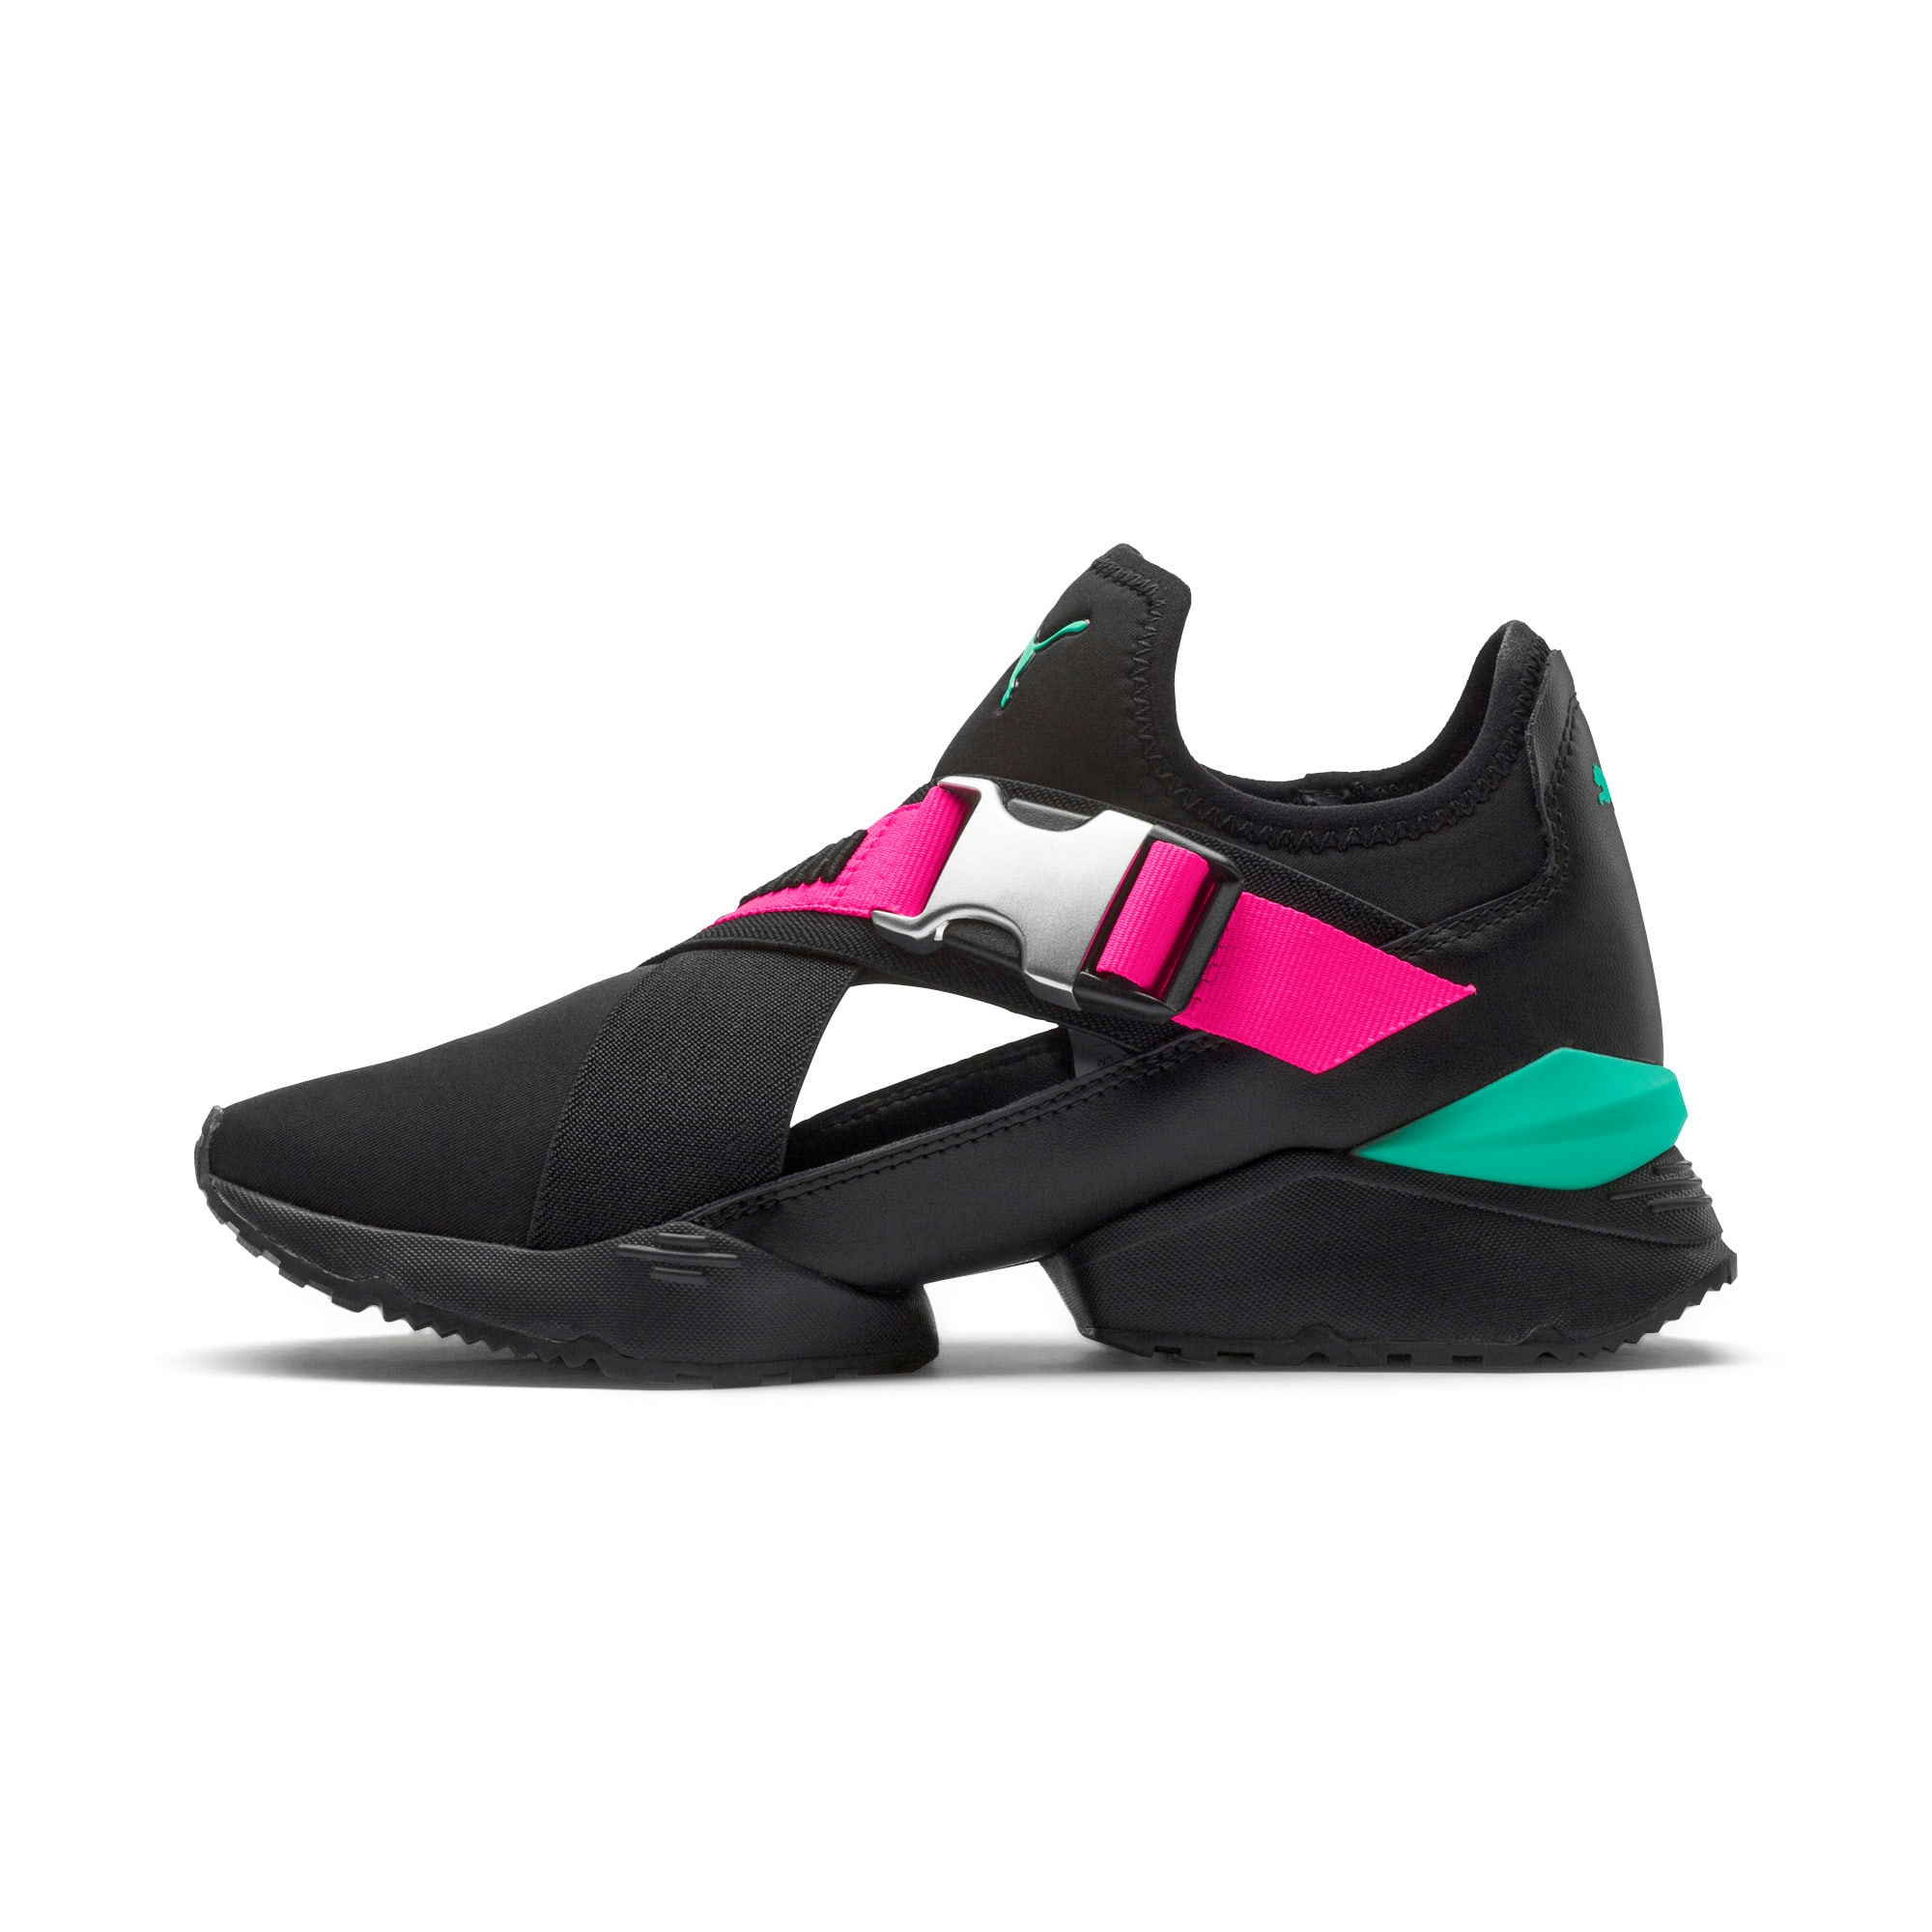 MUSE EOS Street 1 Women's Sneakers